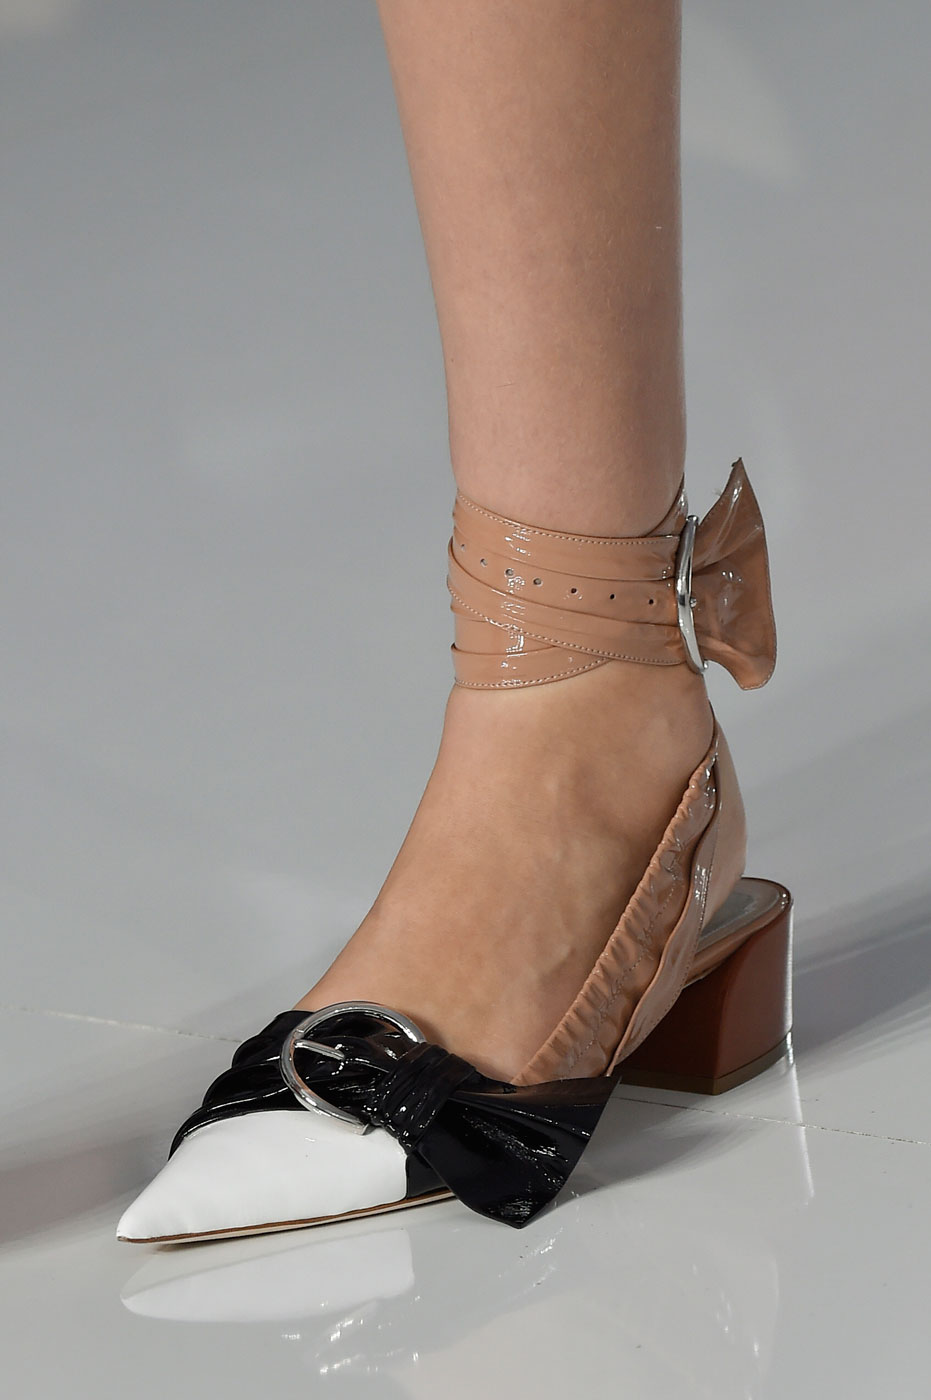 Runway Collection Shoes Black High Heels